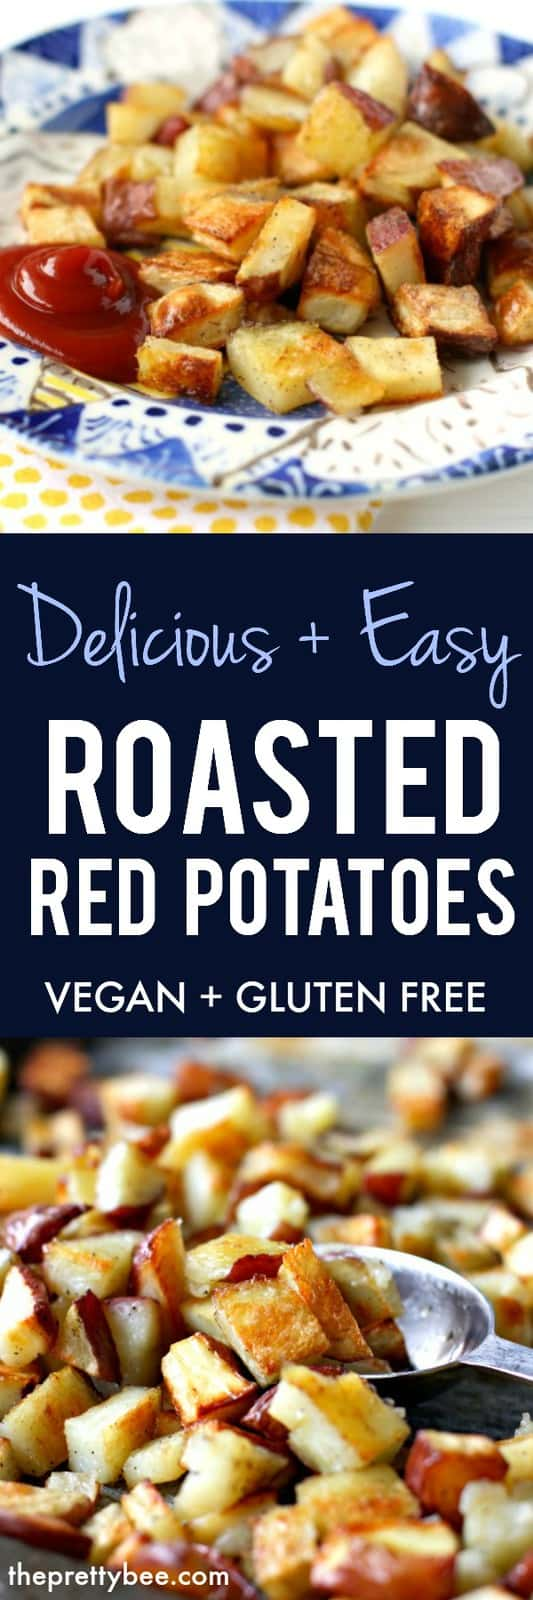 Easy and tasty roasted red potatoes are the perfect side dish for the cooler weather! Enjoy these potatoes for dinner or even breakfast! #glutenfree #dairyfree #vegan